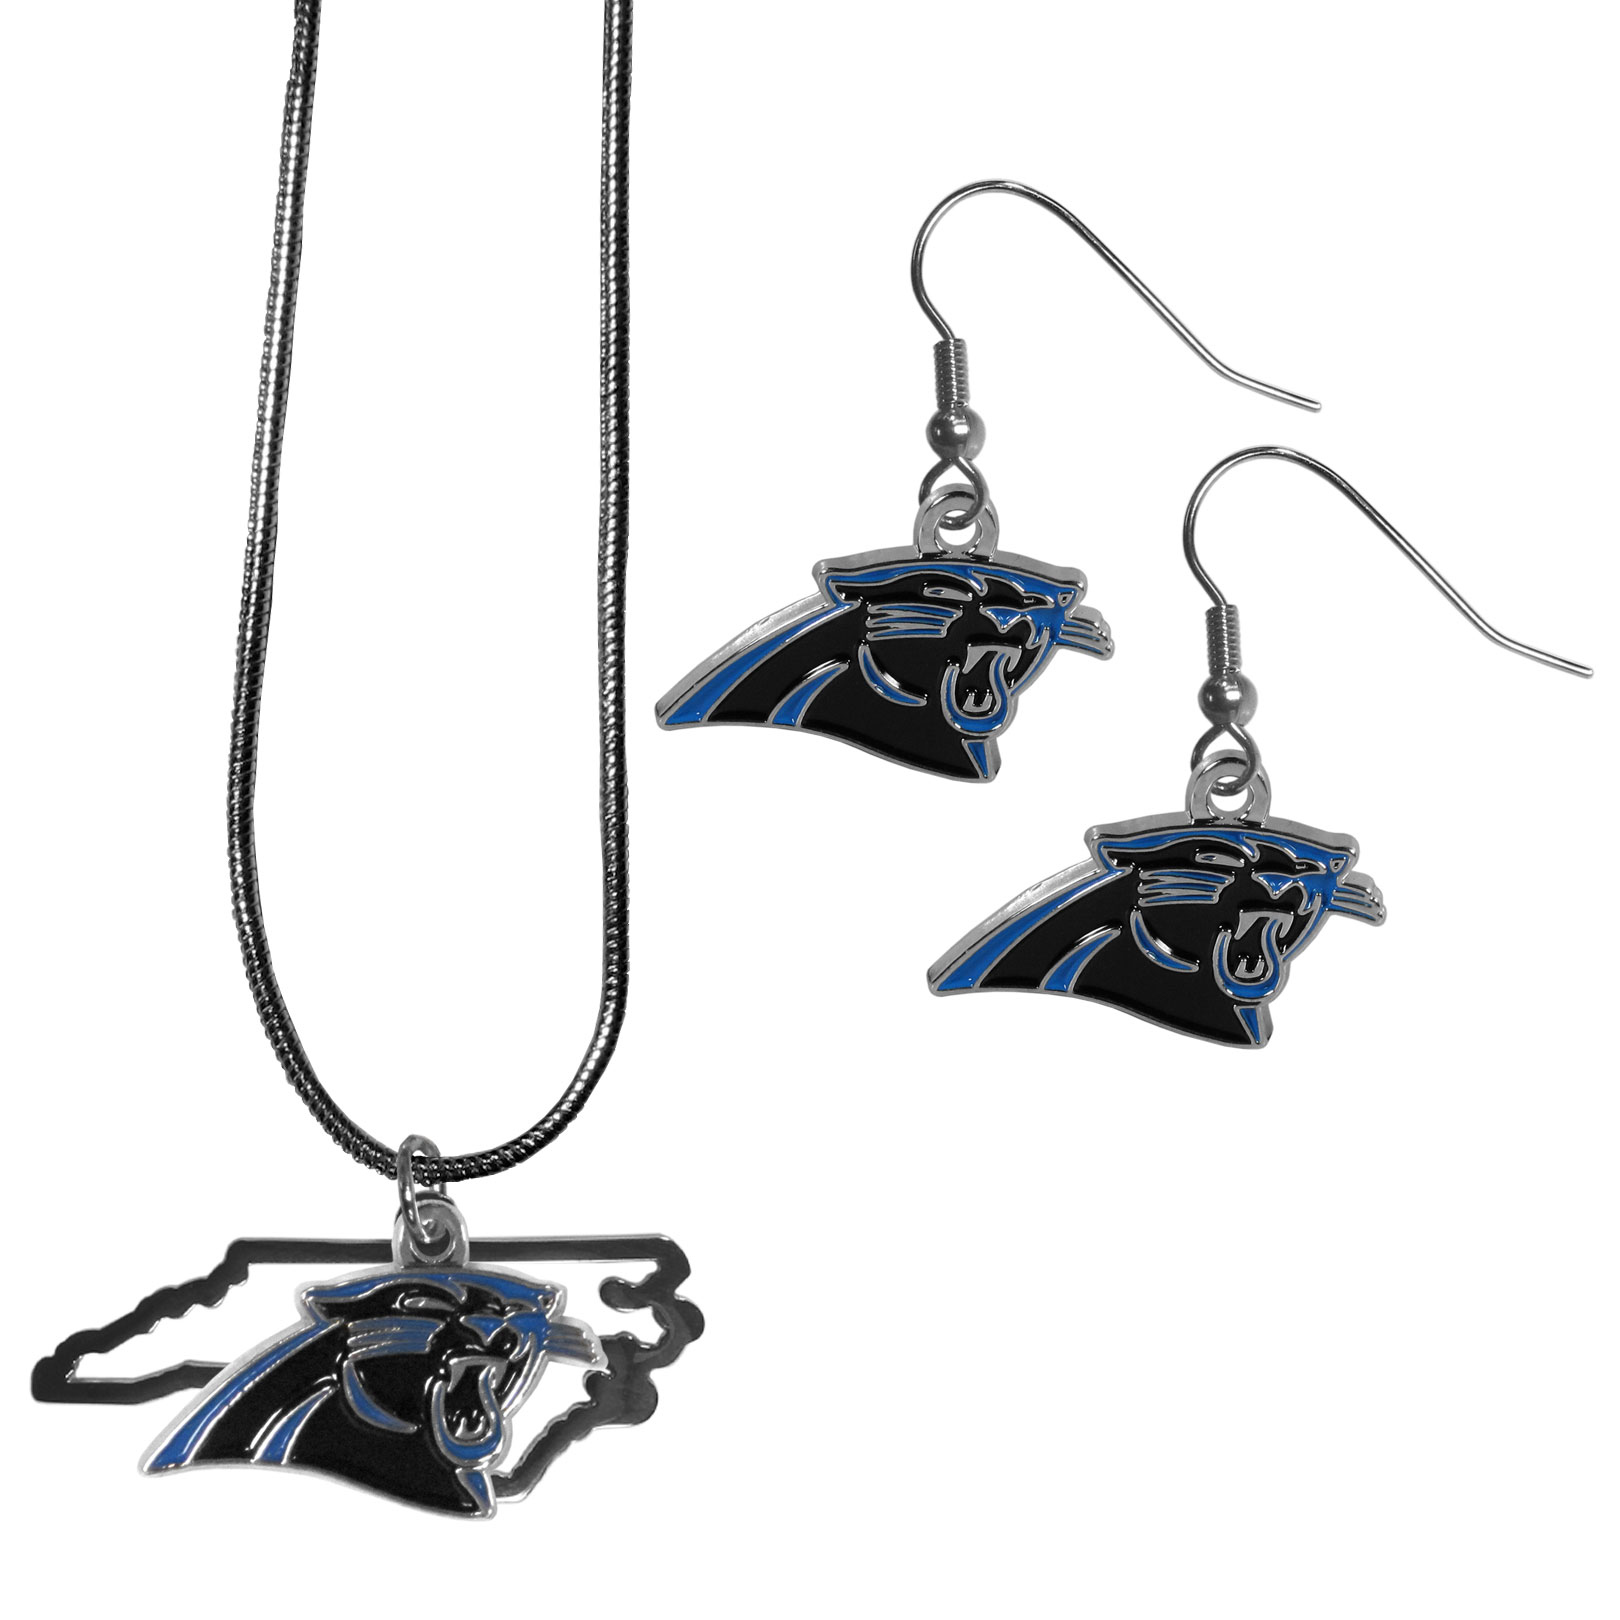 Carolina Panthers Dangle Earrings and State Necklace Set - Get in on the trend! State themes are a trend that just keeps getting more popular and this jewelry set takes the state style and give it a sporty twist with a Carolina Panthers necklace that features an Arizona state outline charm paired with a beautiful team charm and matching team charm dangle earrings. The earrings feature hypoallergenic fishhook posts that are nickel free.